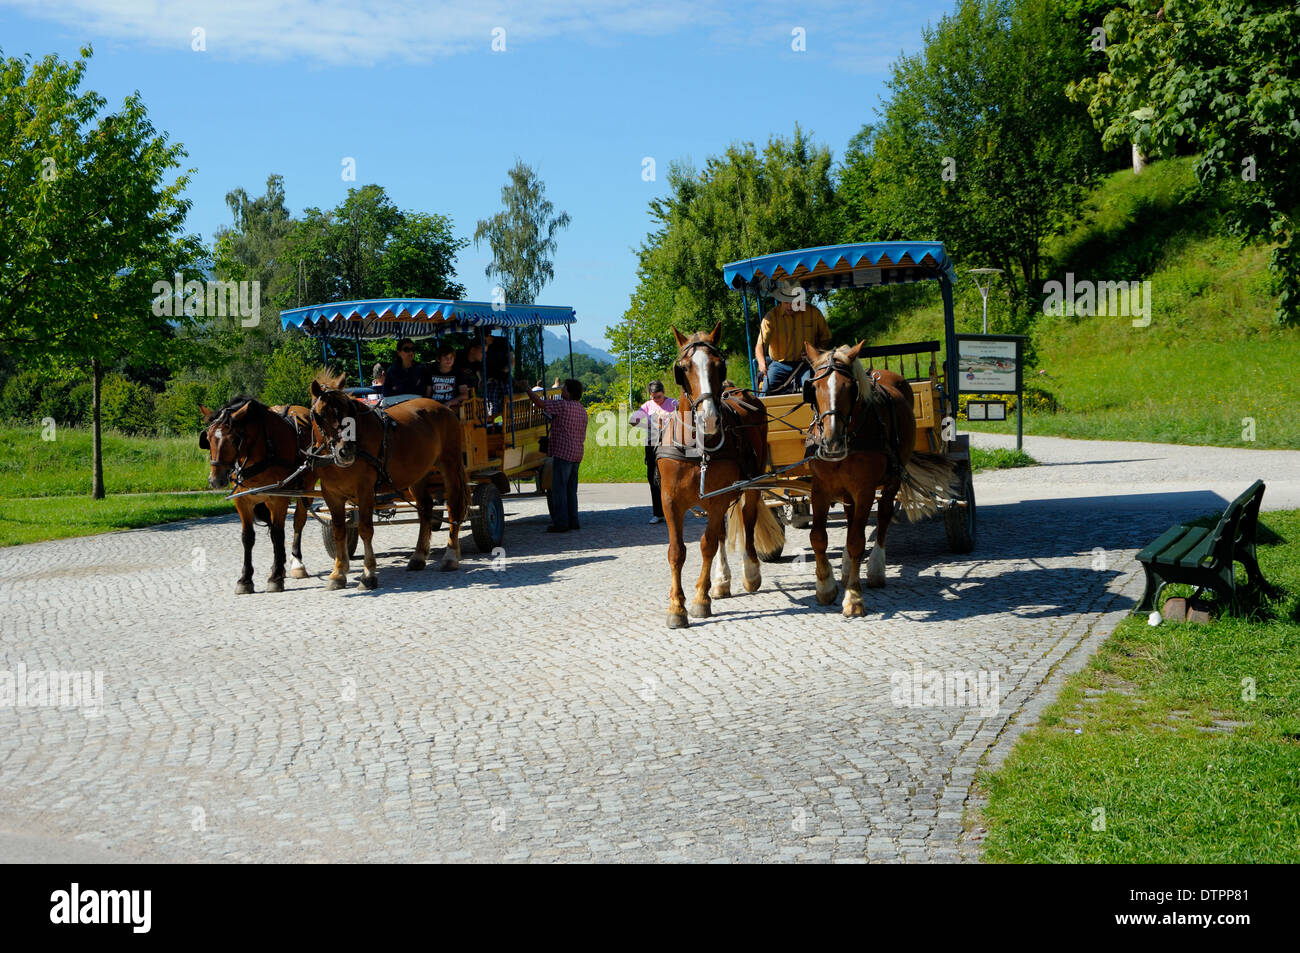 Carriages, Herrenchiemsee, Chiemsee, Bavaria, Germany - Stock Image